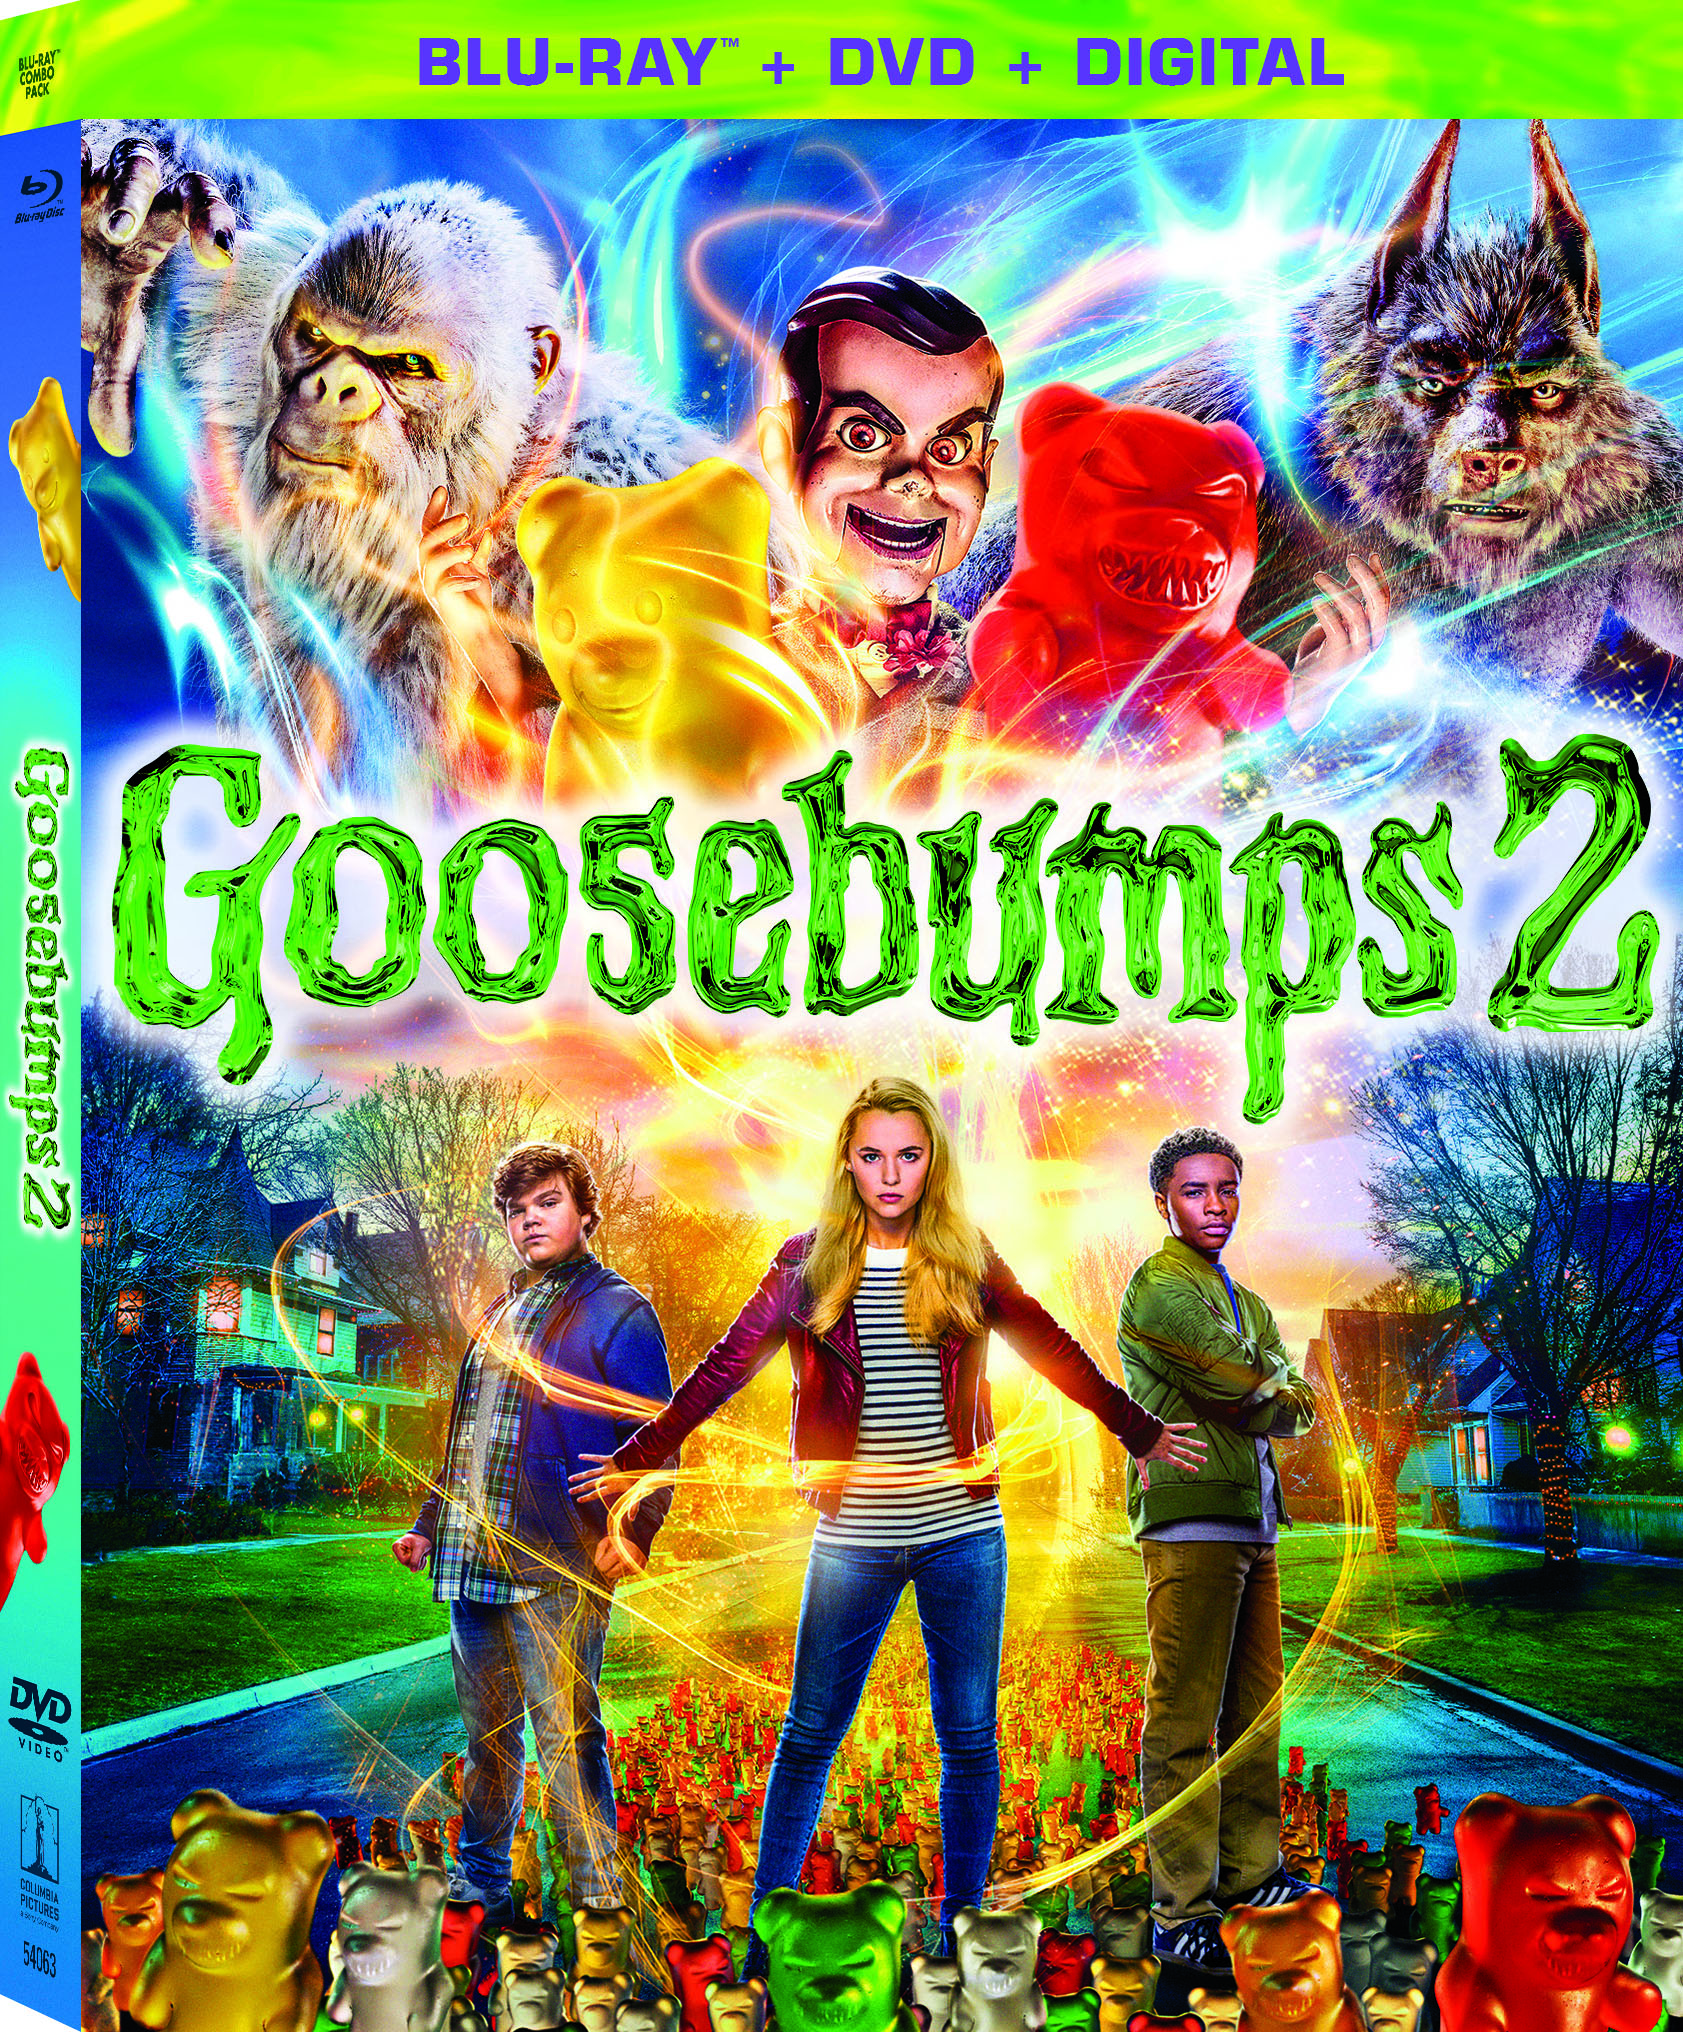 GooseBumps 2 2018 Bluray OuterSleeve FrontLeft